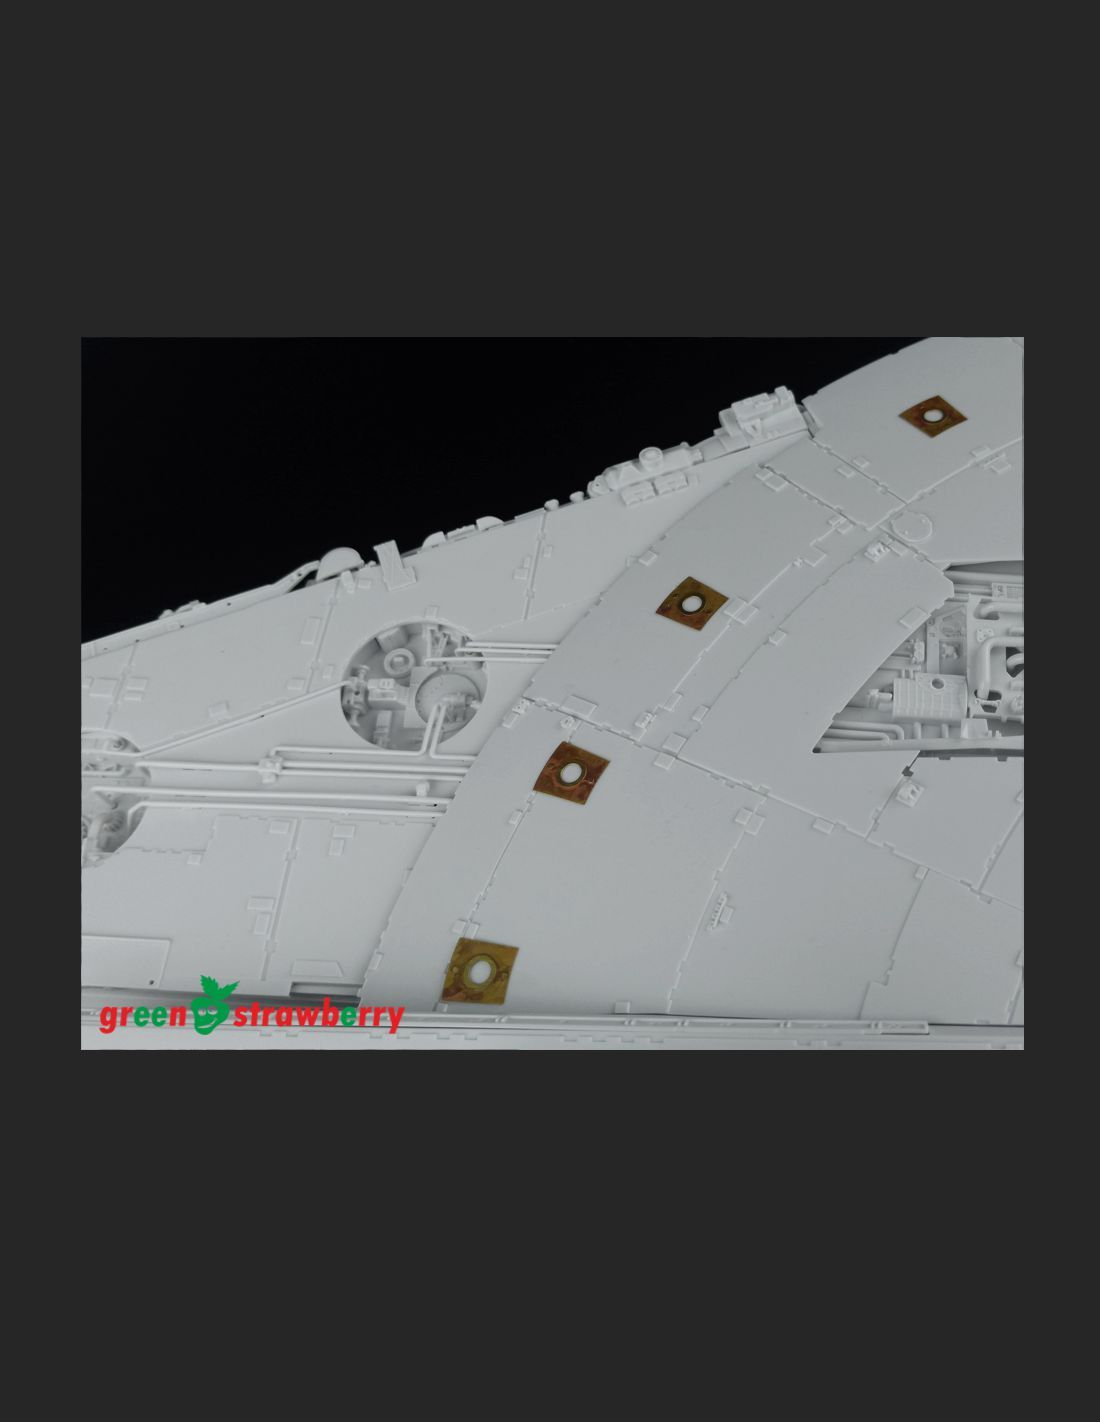 YT-1300 Millennium Falcon PG - Landing and position lights